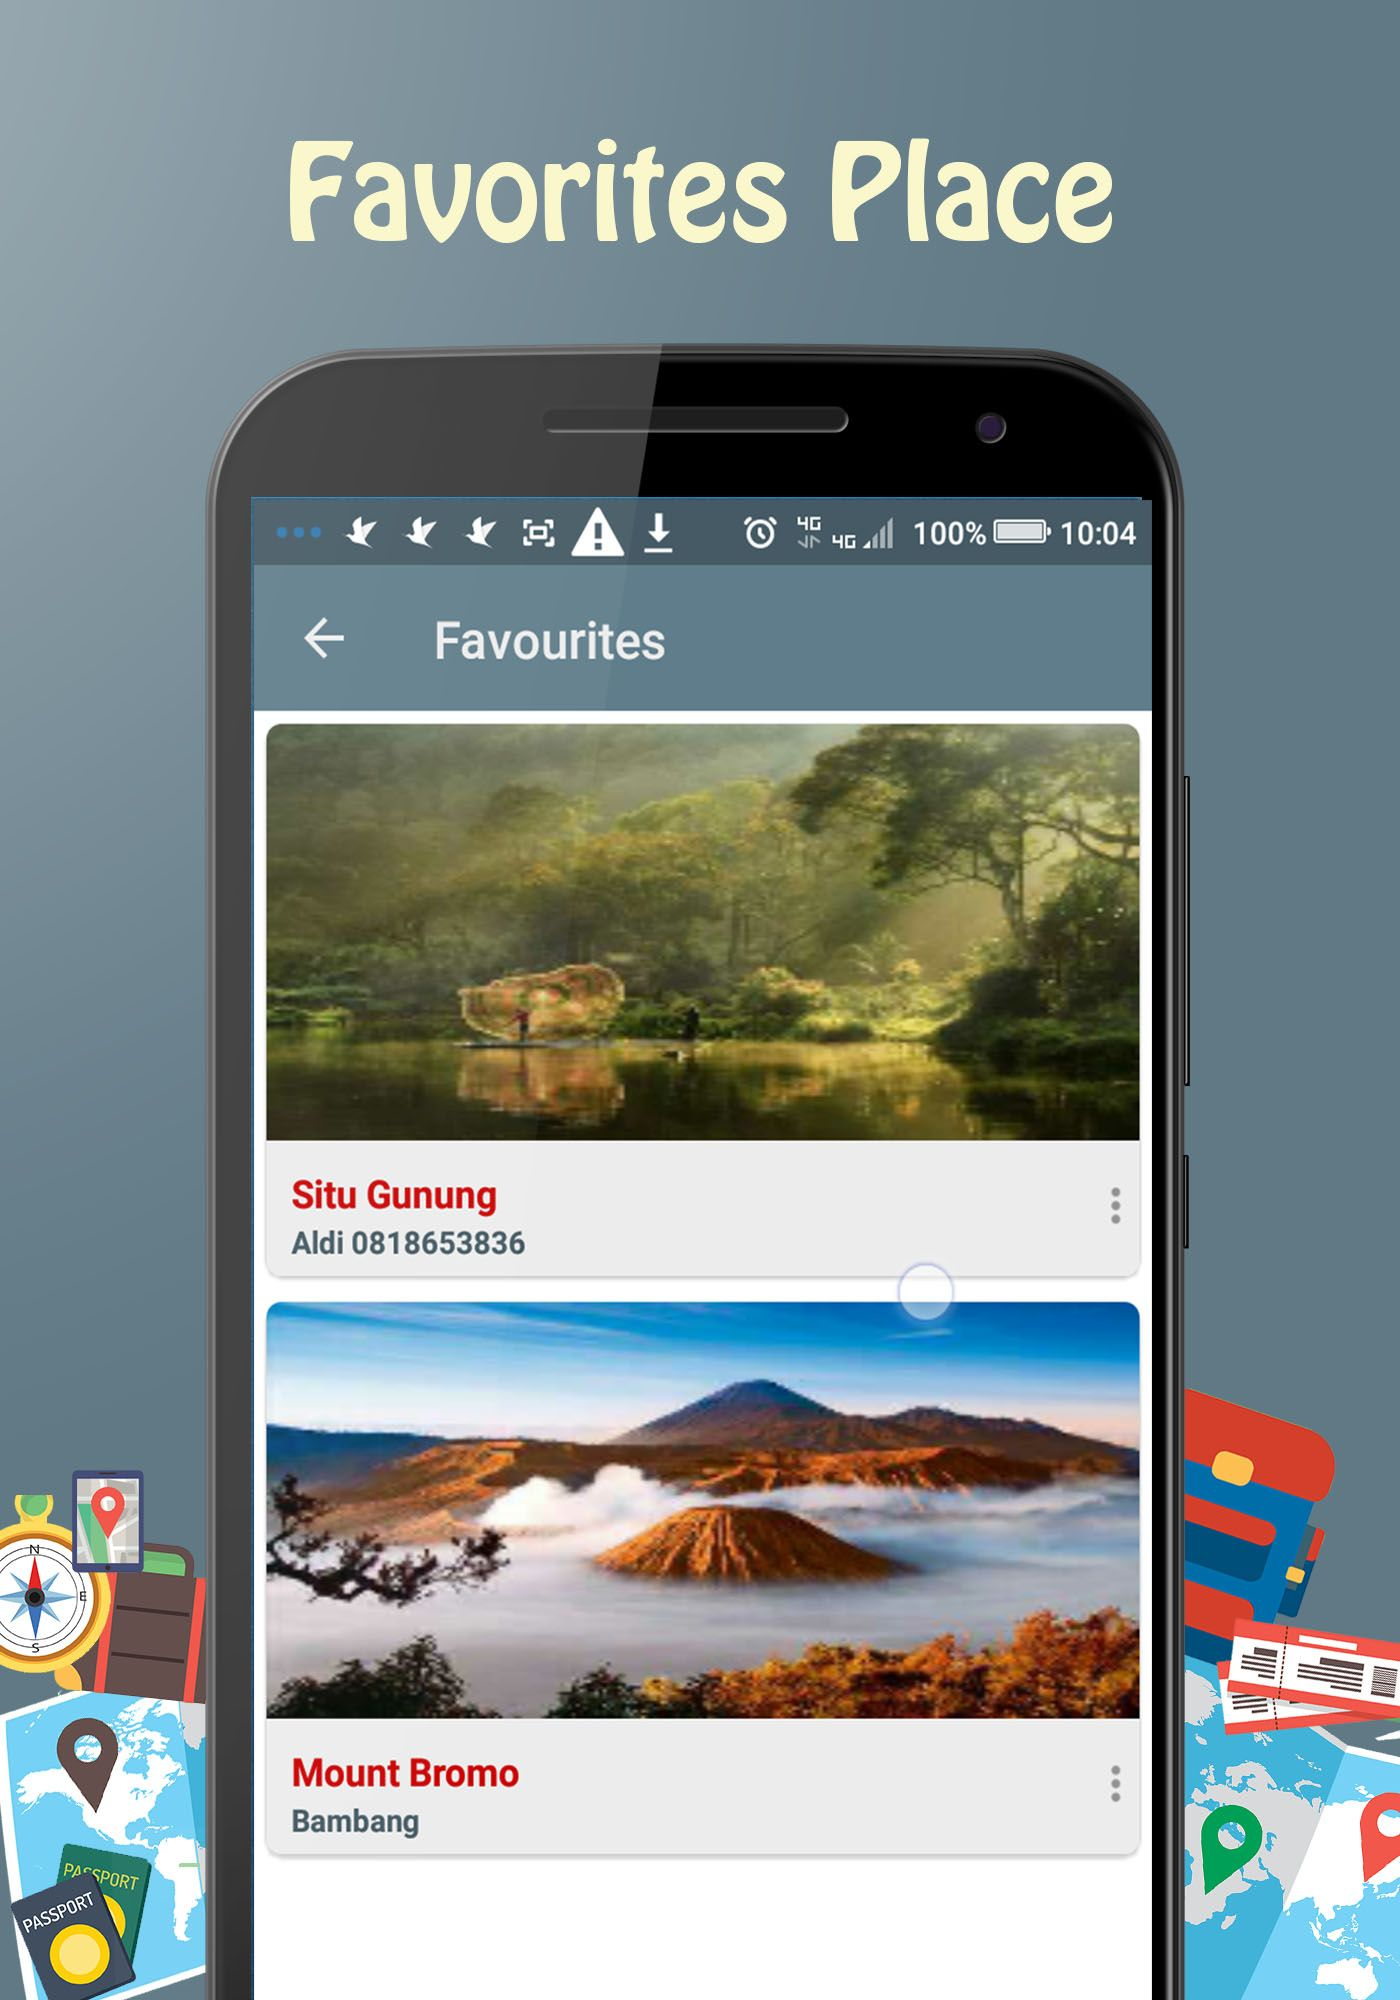 Backpacker - Android Travel App Screenshot 4